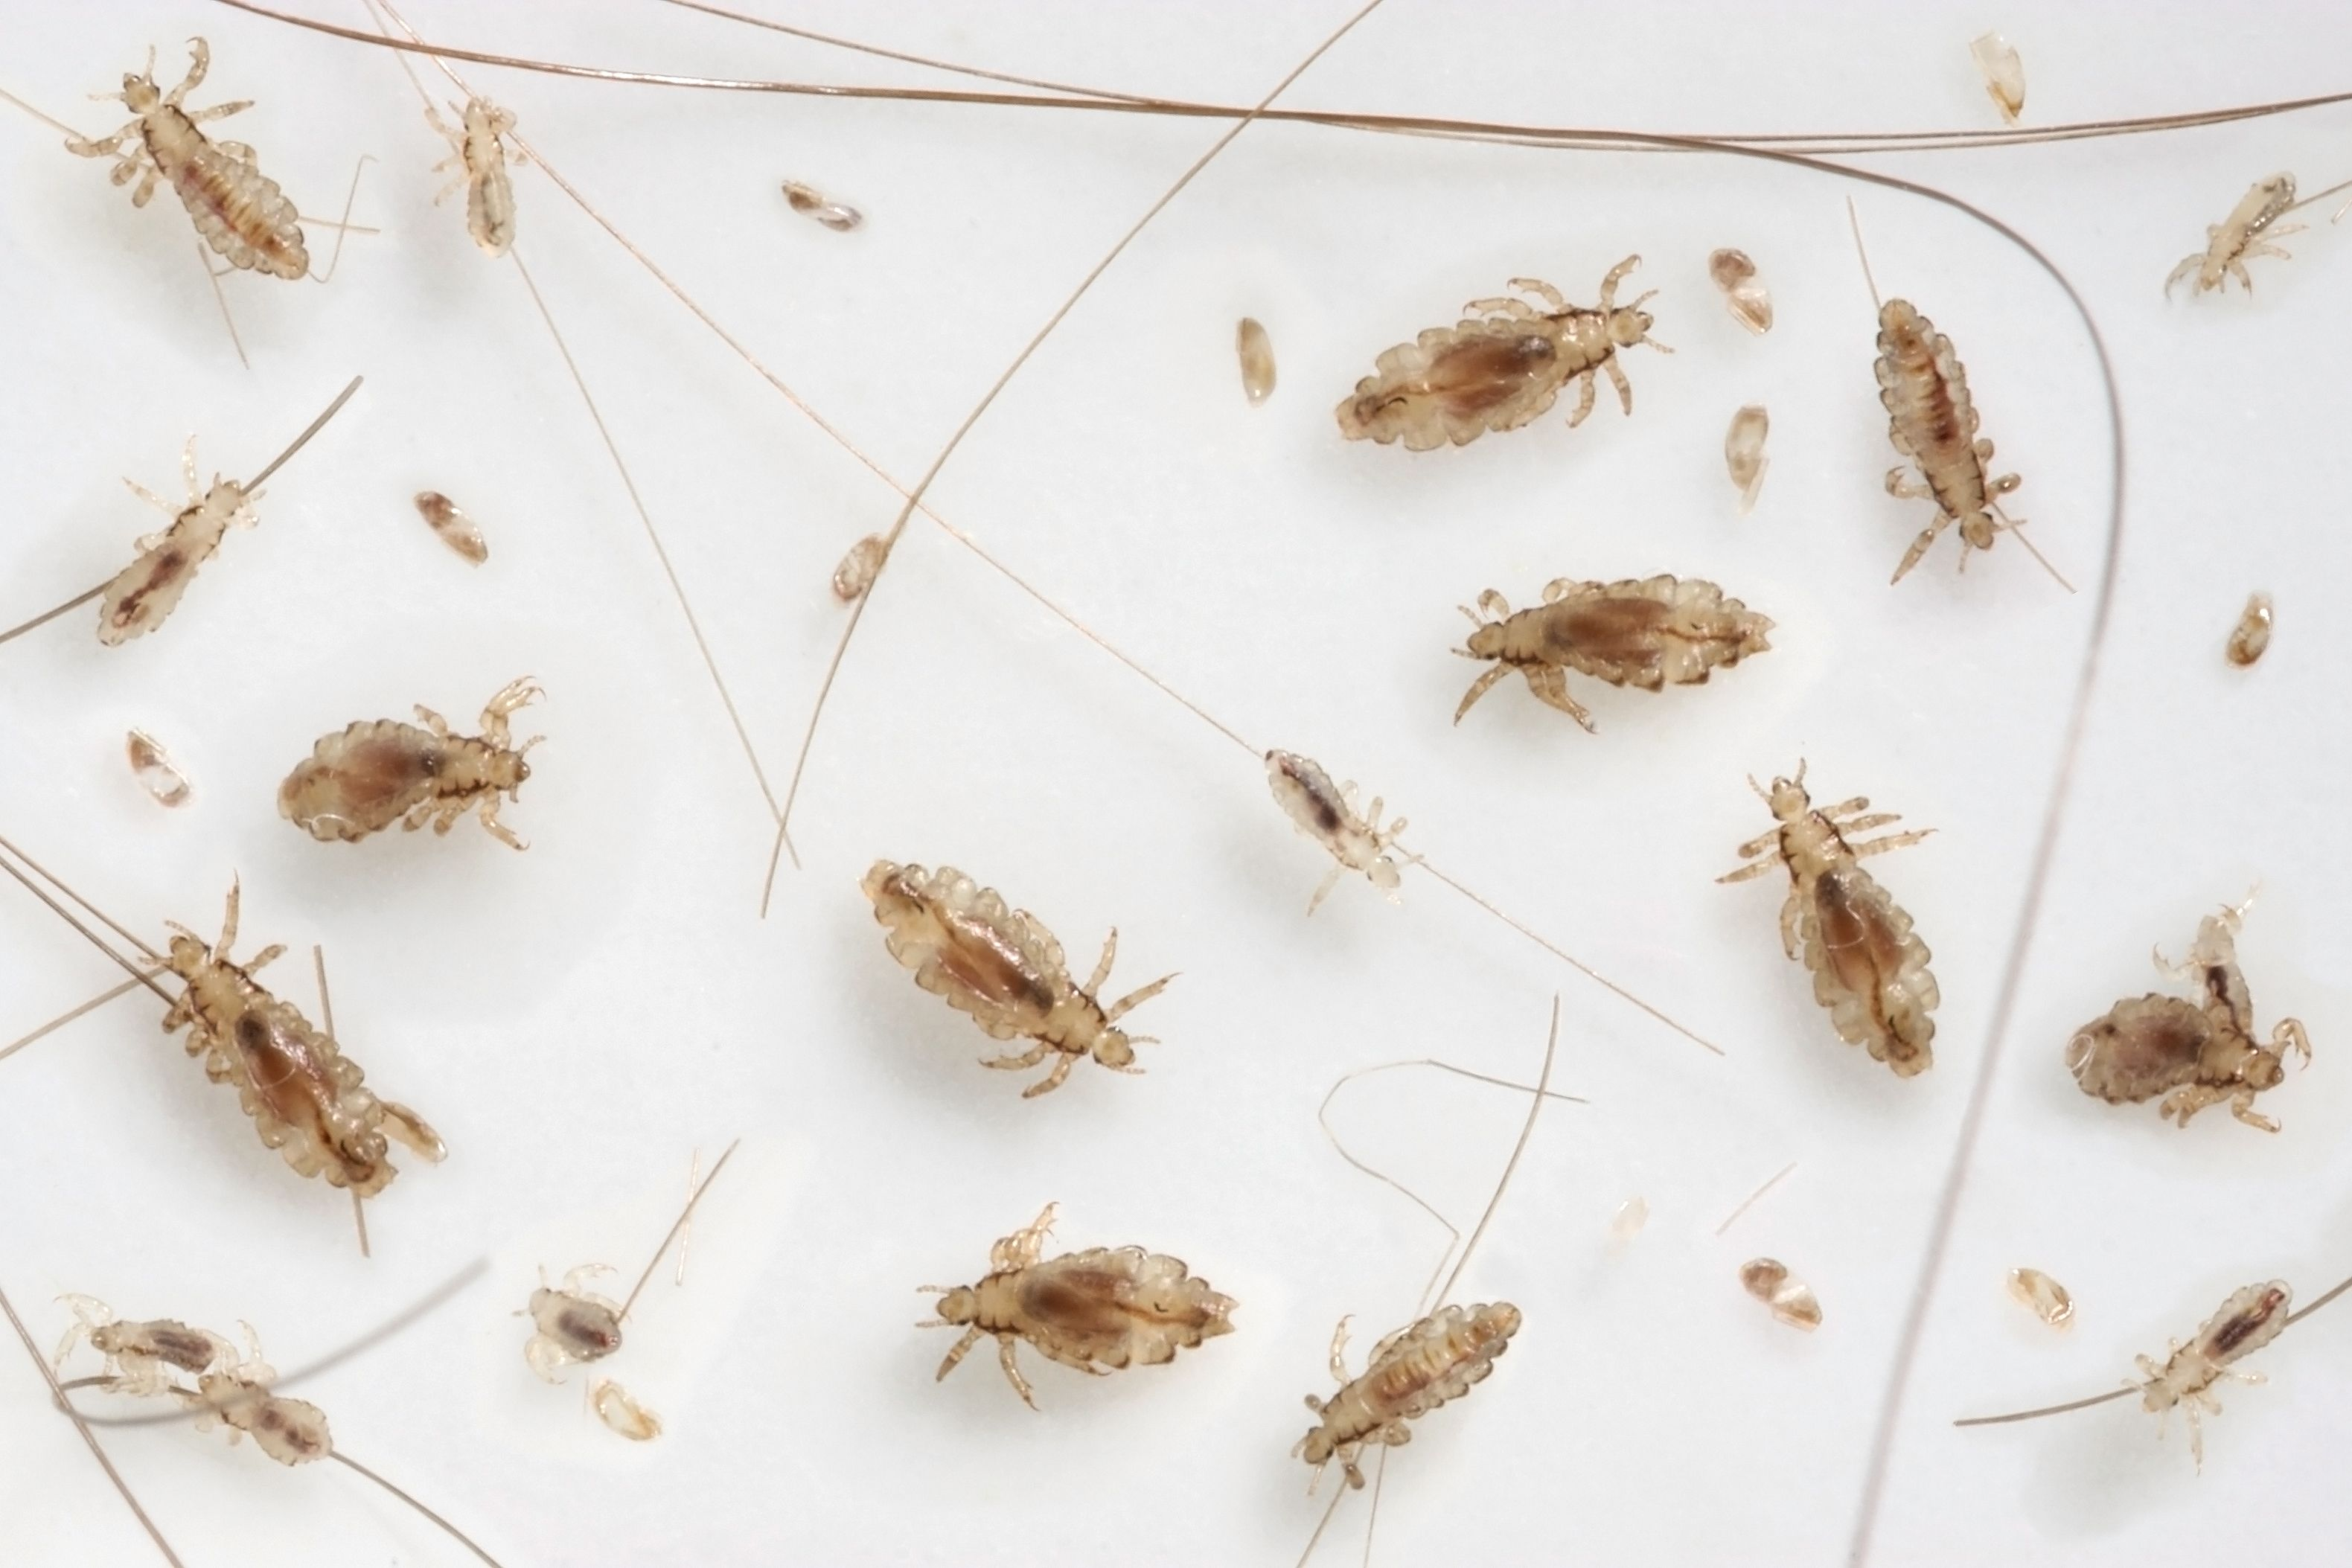 Natural Remedies for Lice — How to Get